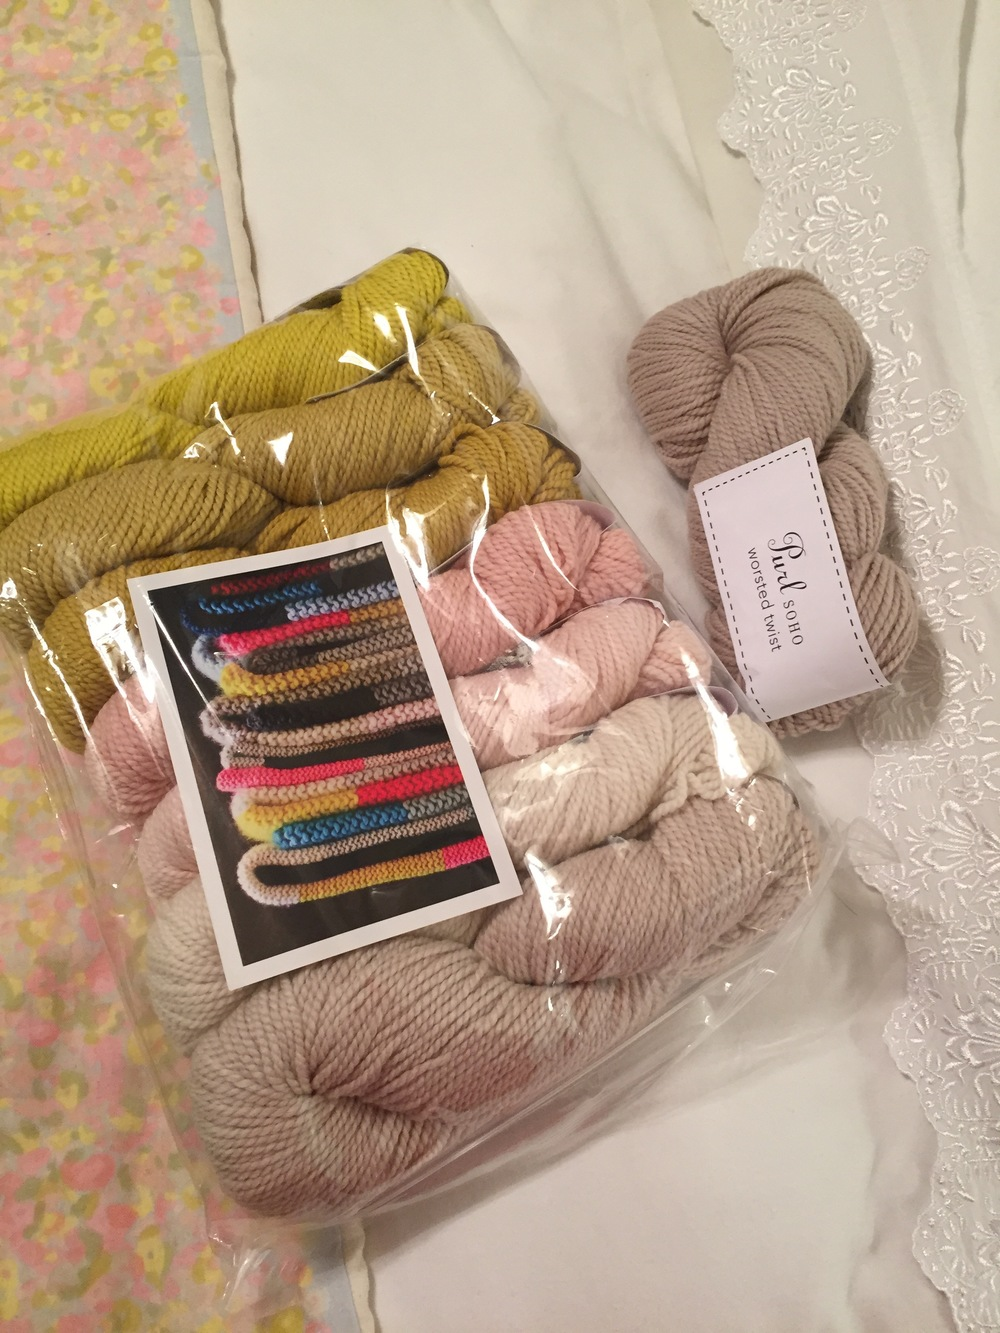 November 13, 2014- the yarn arrived.